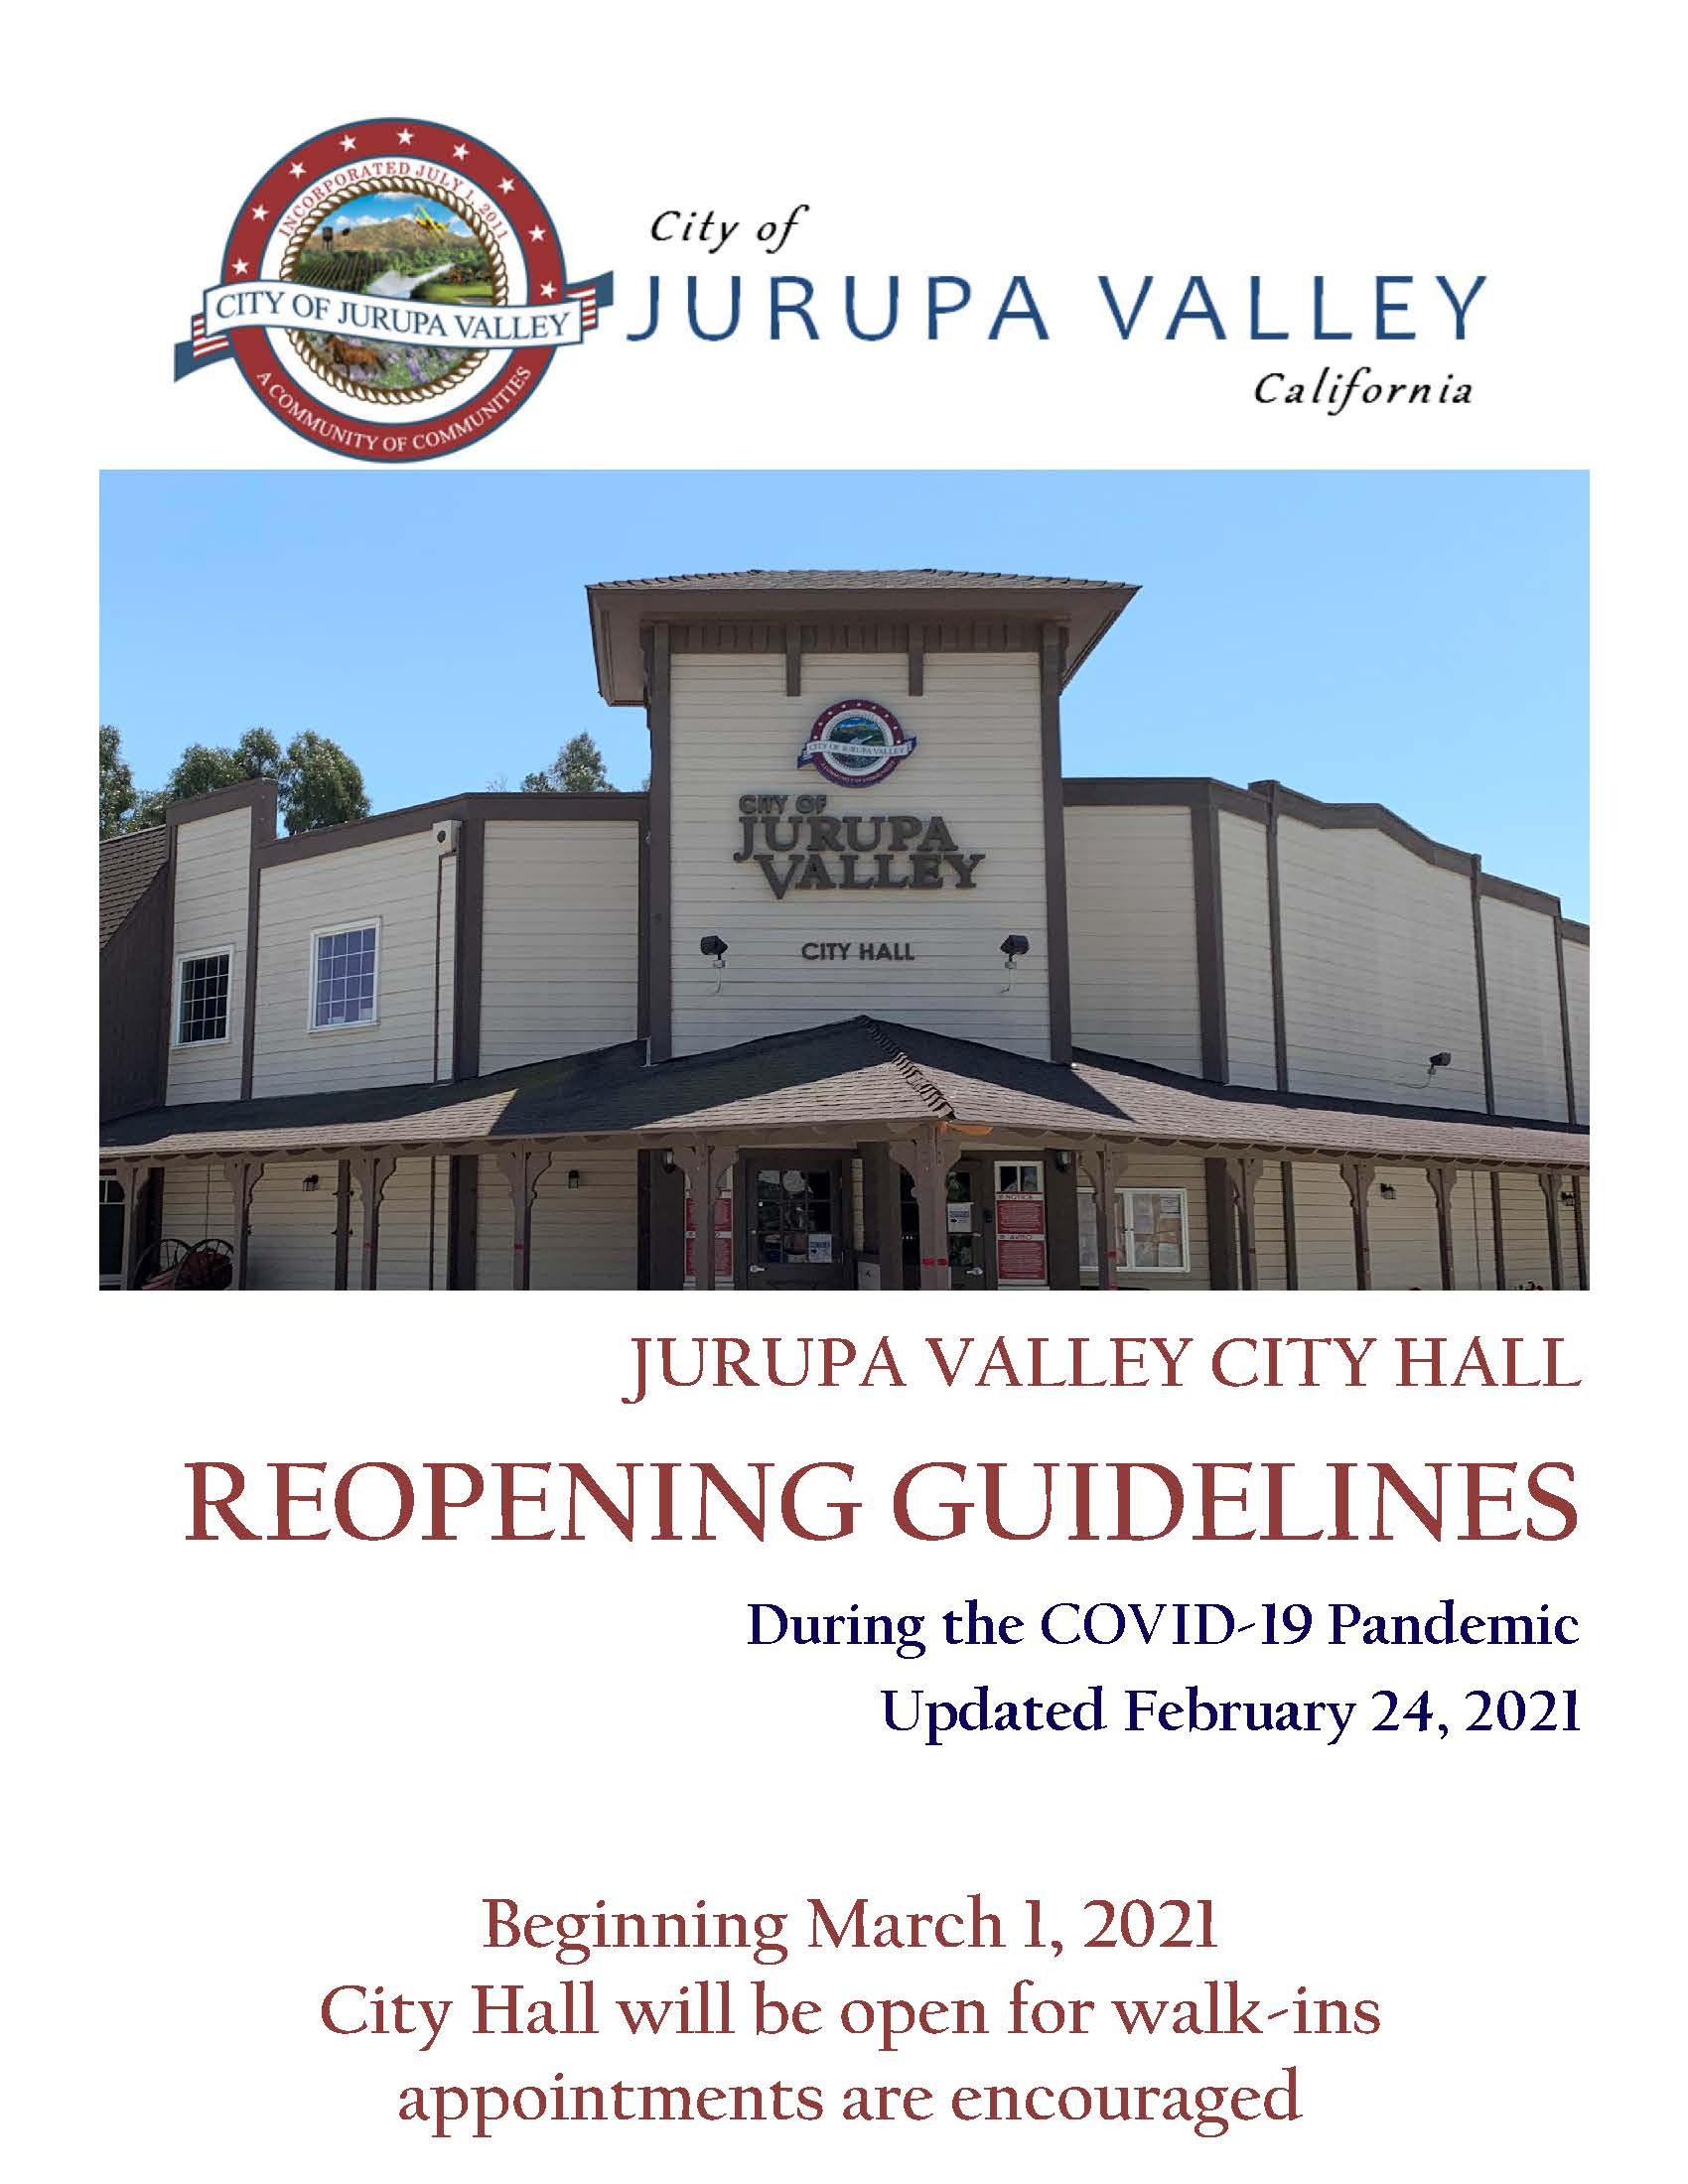 City of Jurupa Valley Reopening Guidlines COVID-19  3-1-21_Page_1